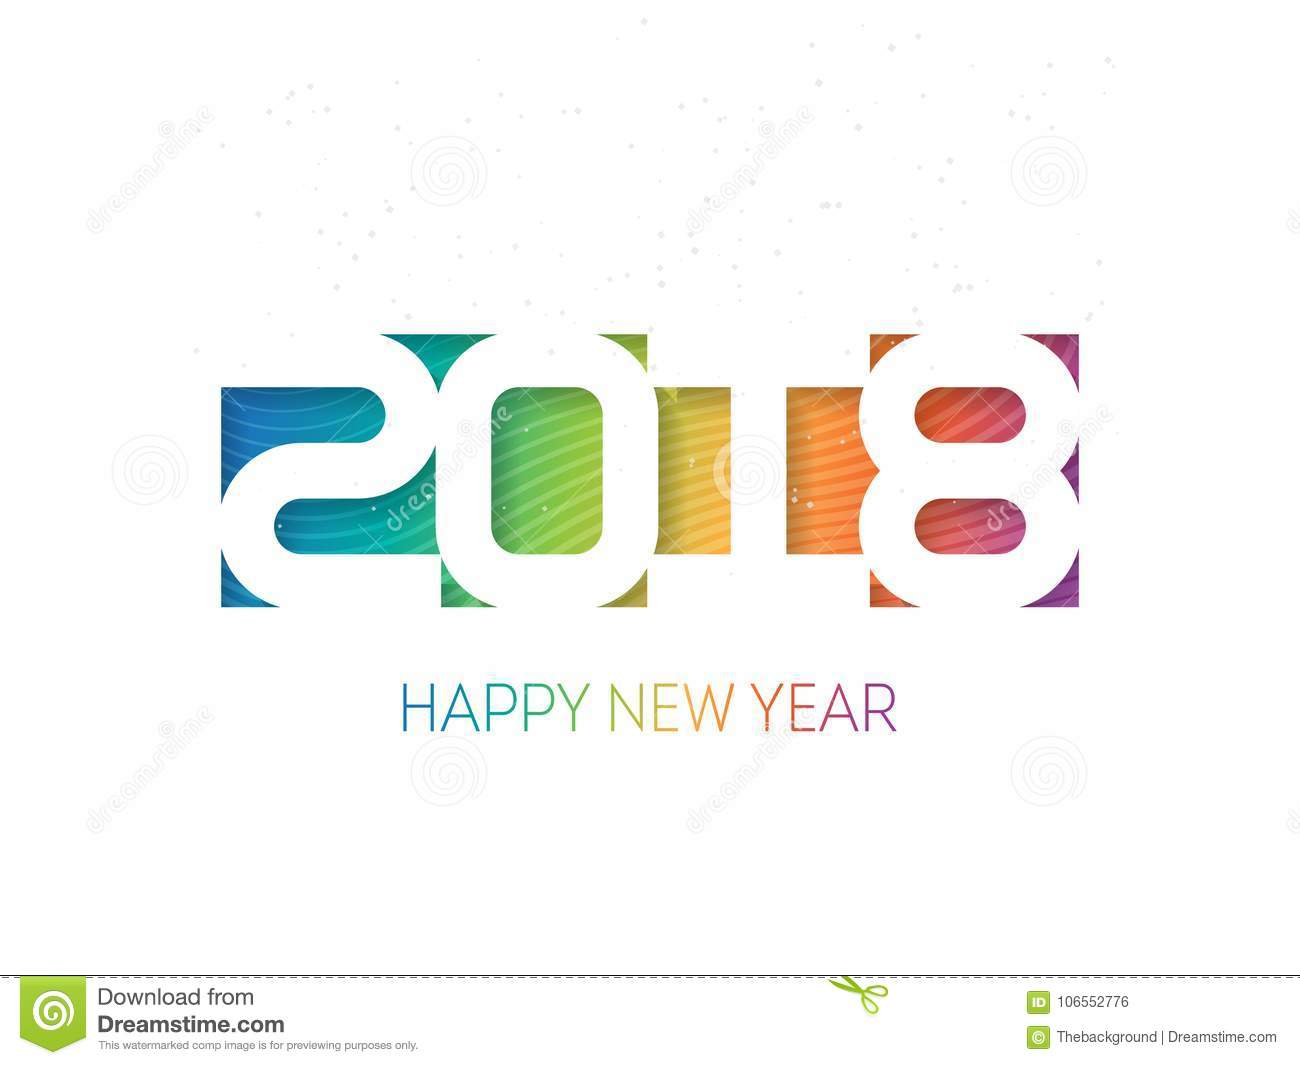 happy new year 2018 vector background cover for the calendar or